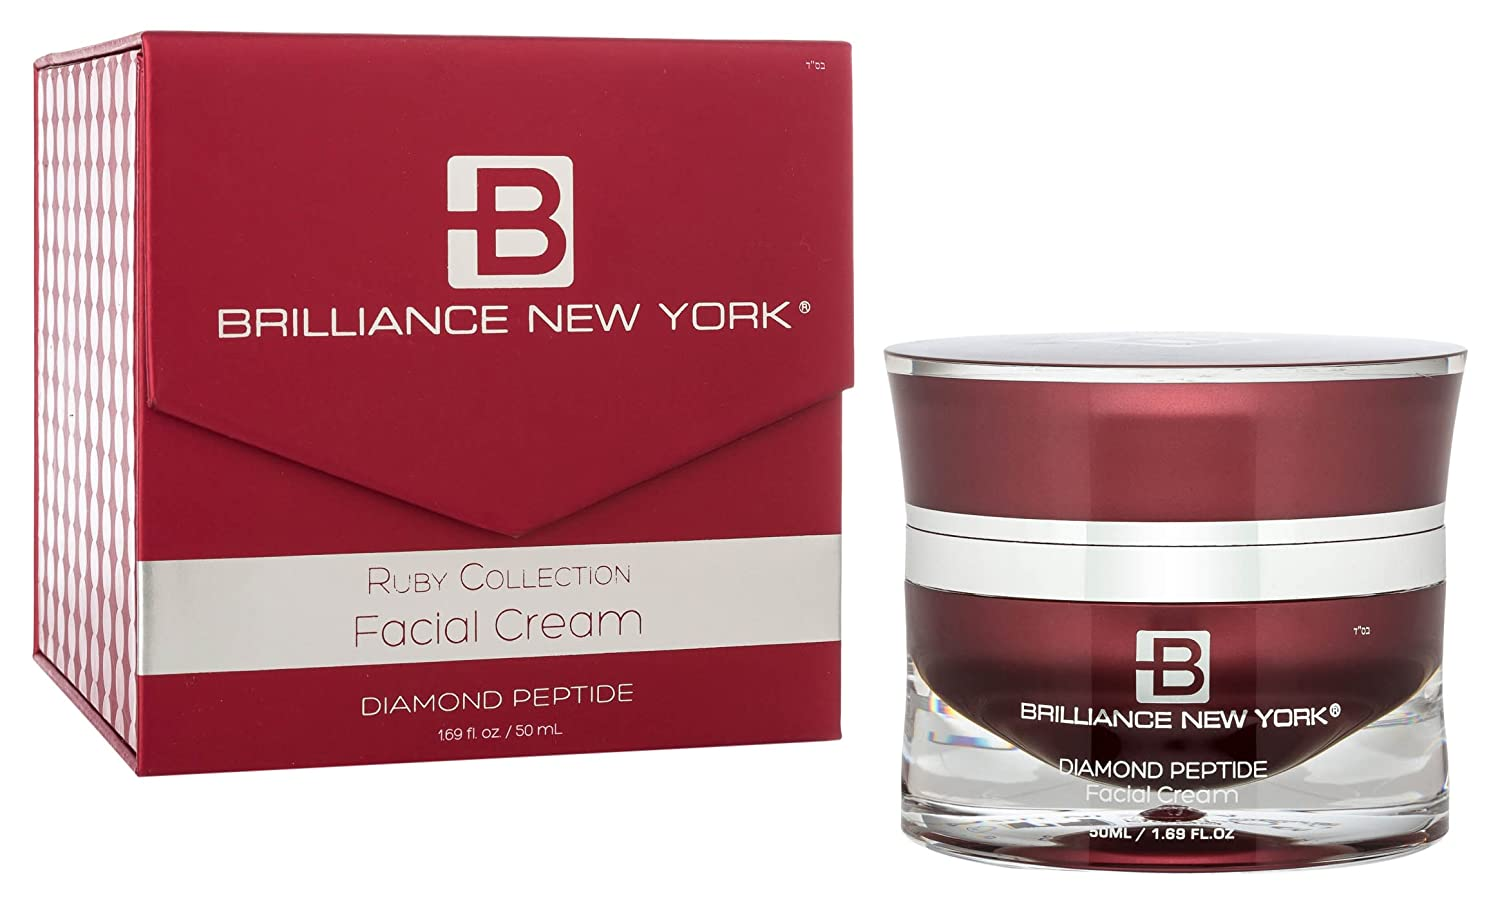 Brilliance New York - Ruby Collection Face Cream, Infused with Rubies and Reishi Mushroom Extract, 1.69 fl oz (50 ml) 100-FC